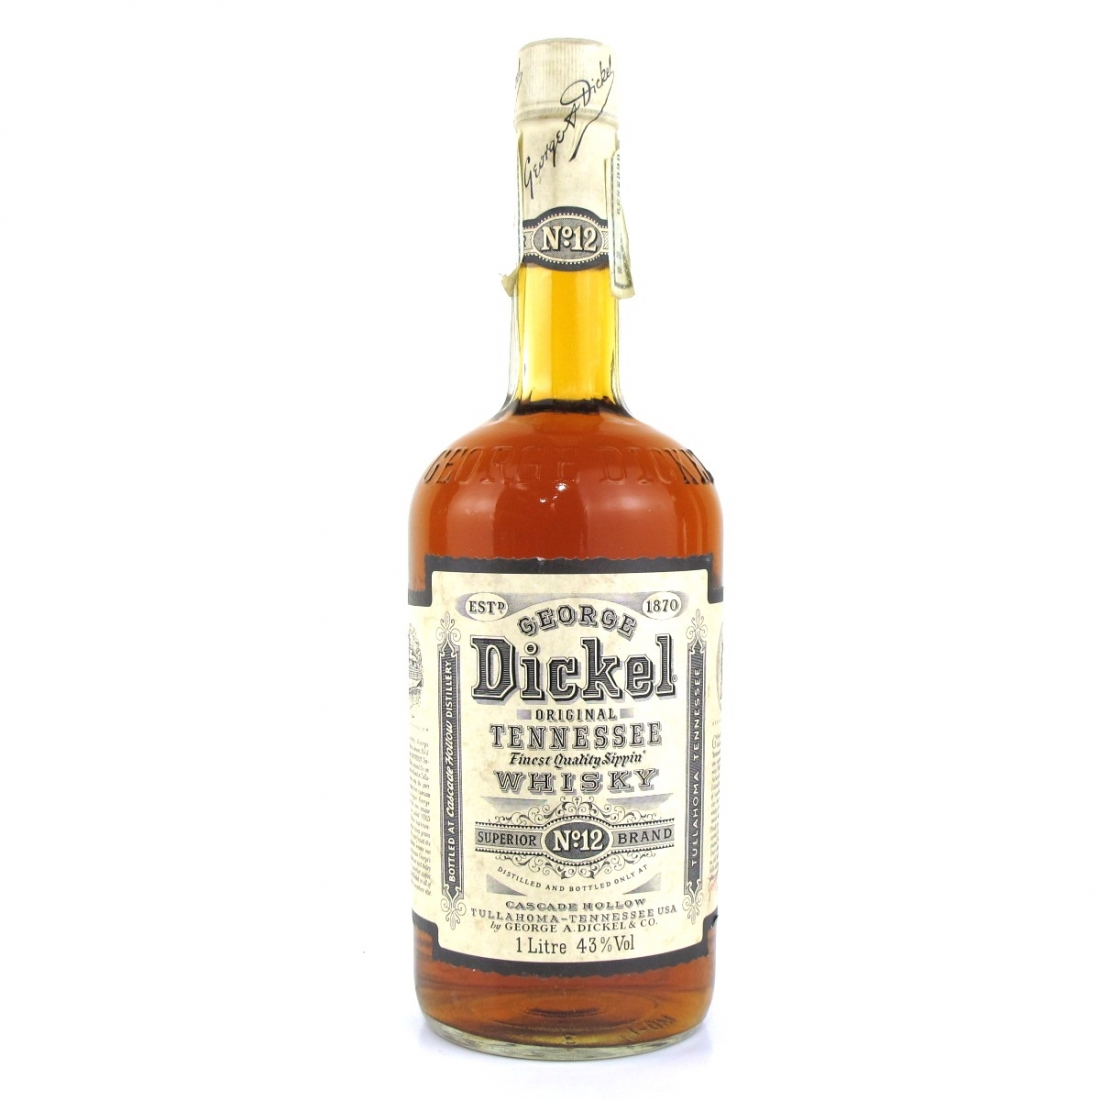 George Dickel Old No.12 Brand 1 Litre 1990s